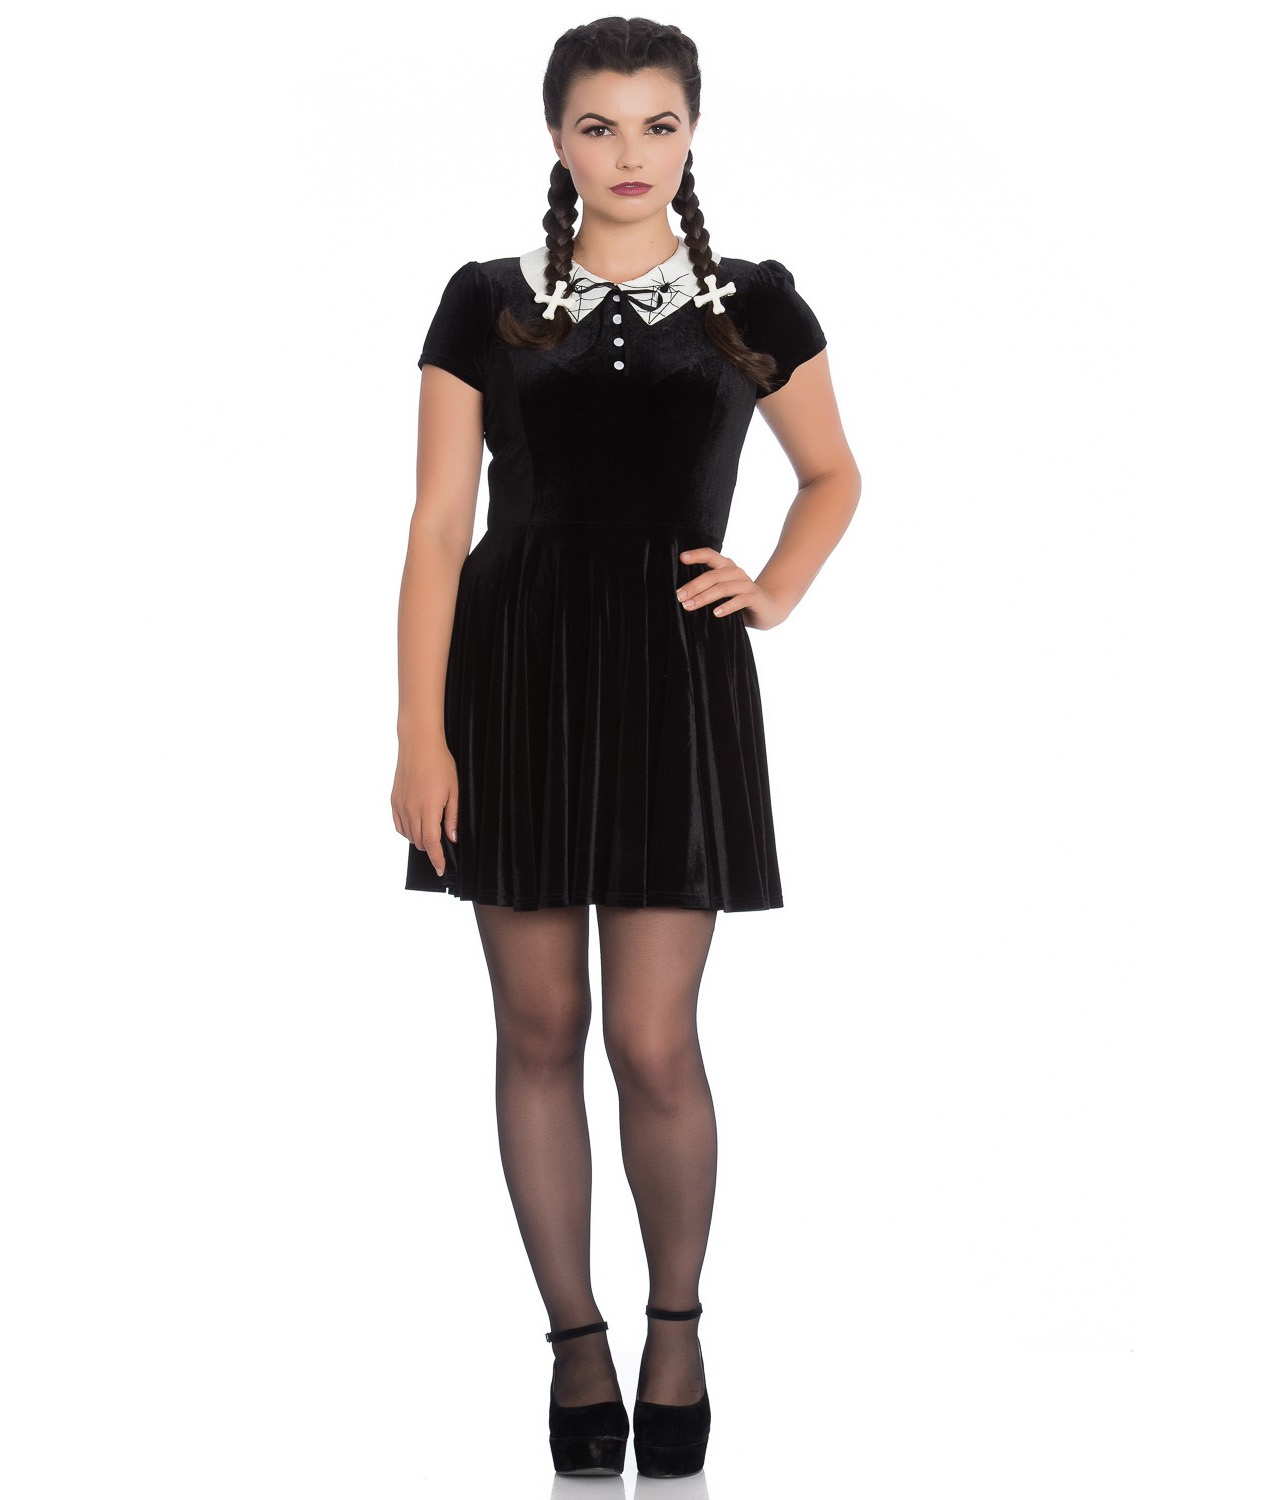 Hell-Bunny-Gothic-Mini-Skater-Dress-MISS-MUFFET-Spiders-Black-Velvet-All-Sizes thumbnail 27